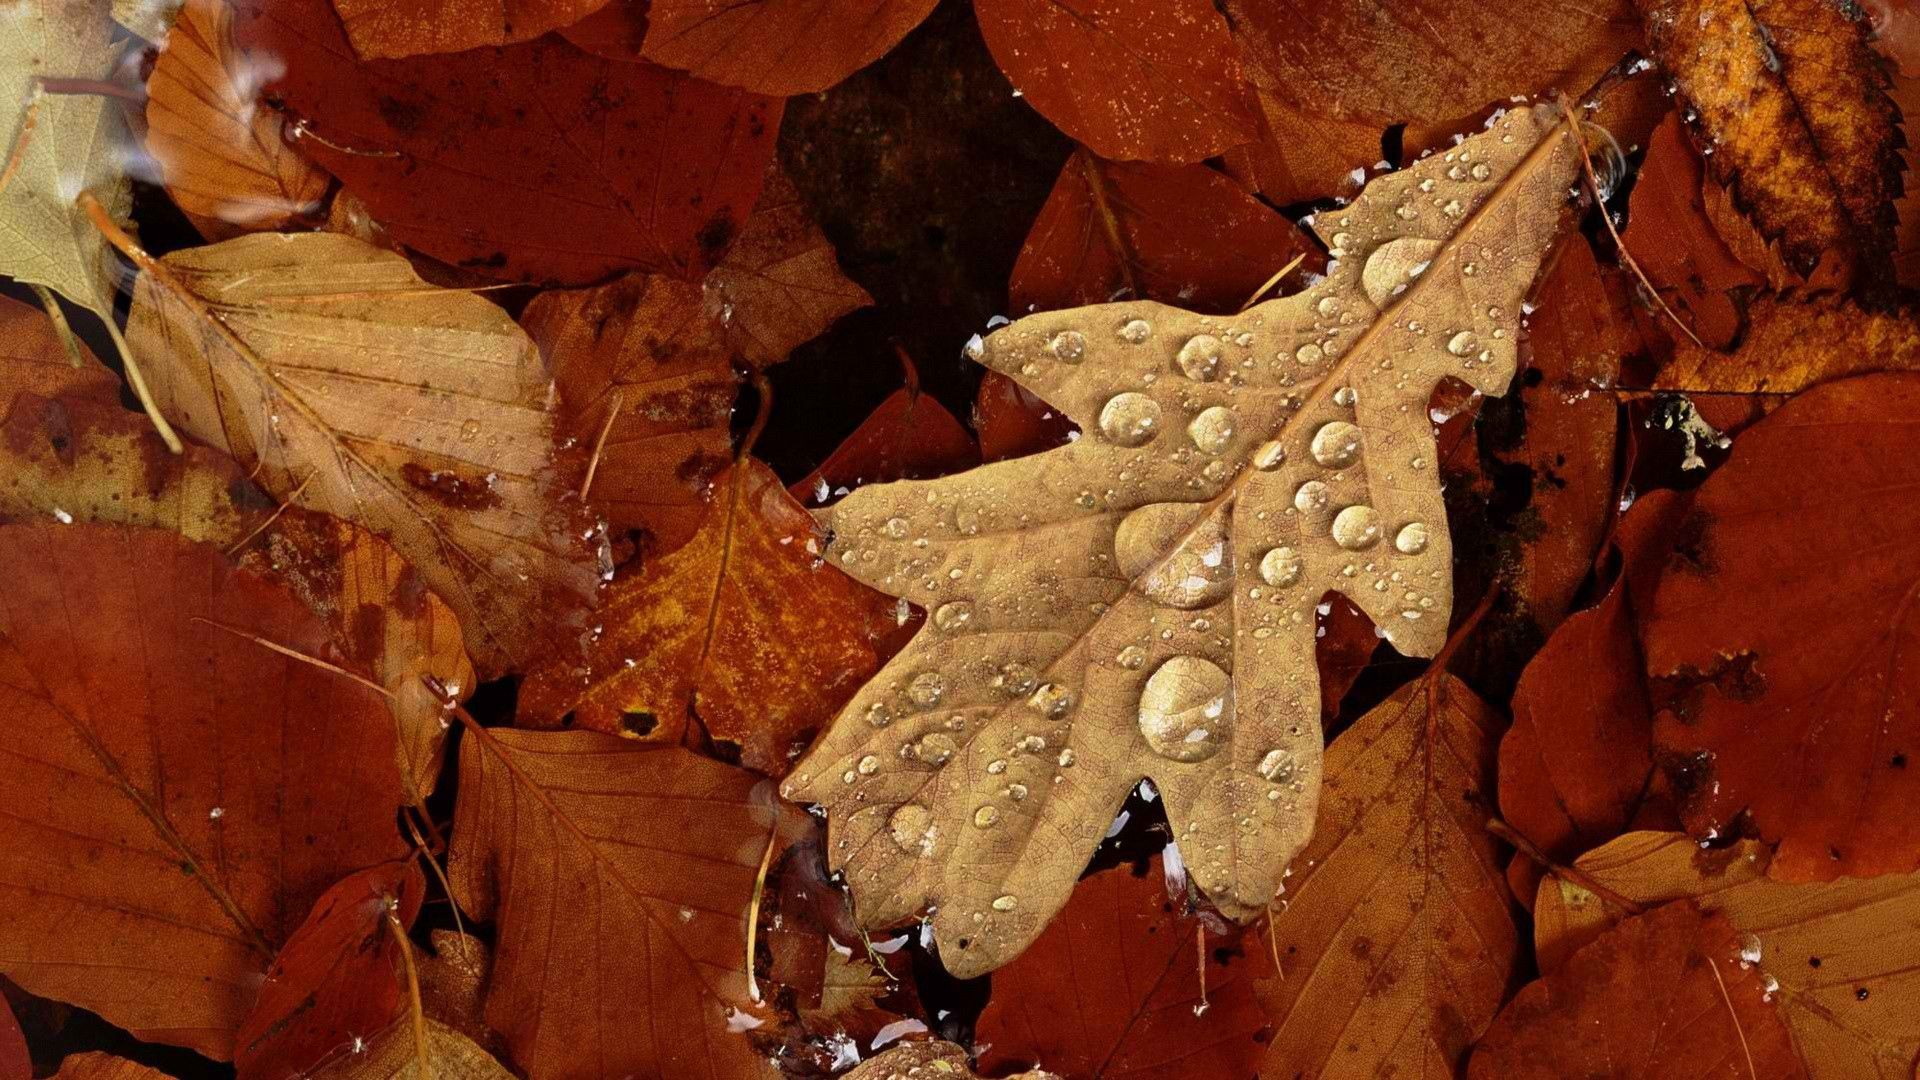 116601 download wallpaper Macro, Leaves, Autumn, Dry, Moisture, Drops screensavers and pictures for free